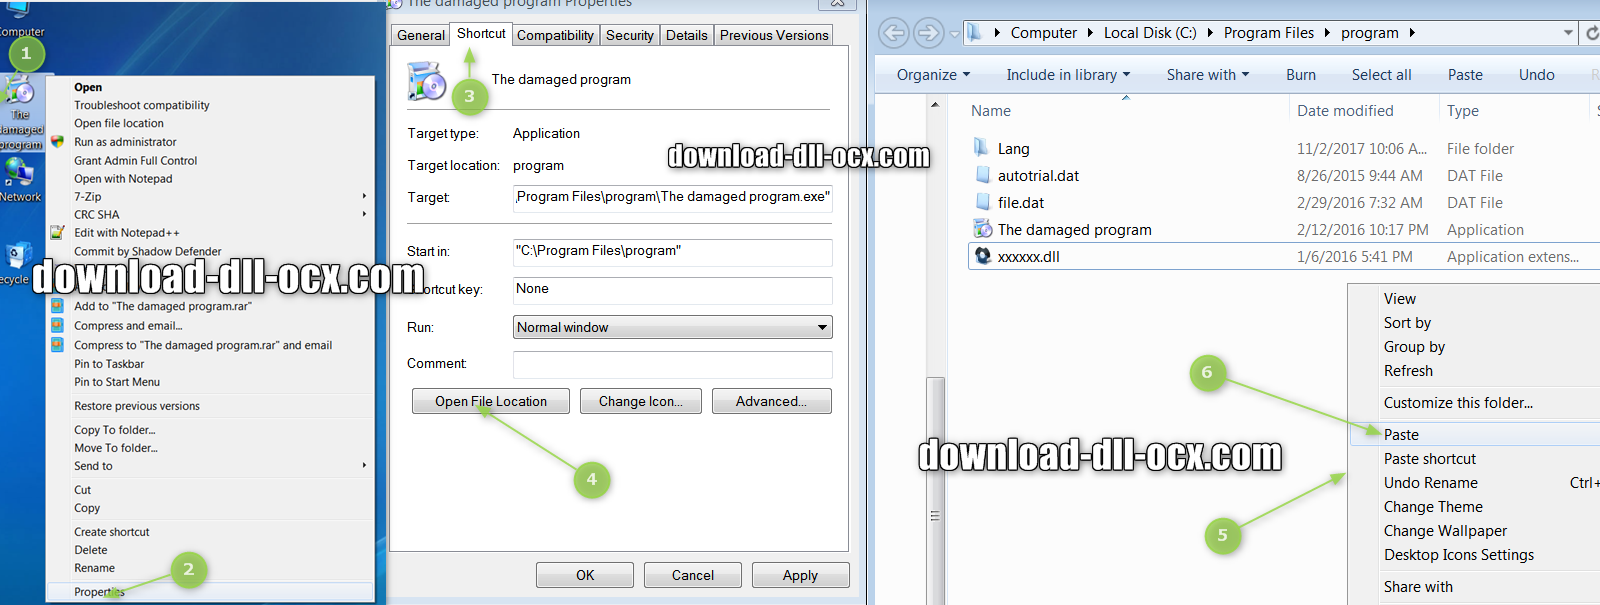 how to install Trnsprov.dll file? for fix missing